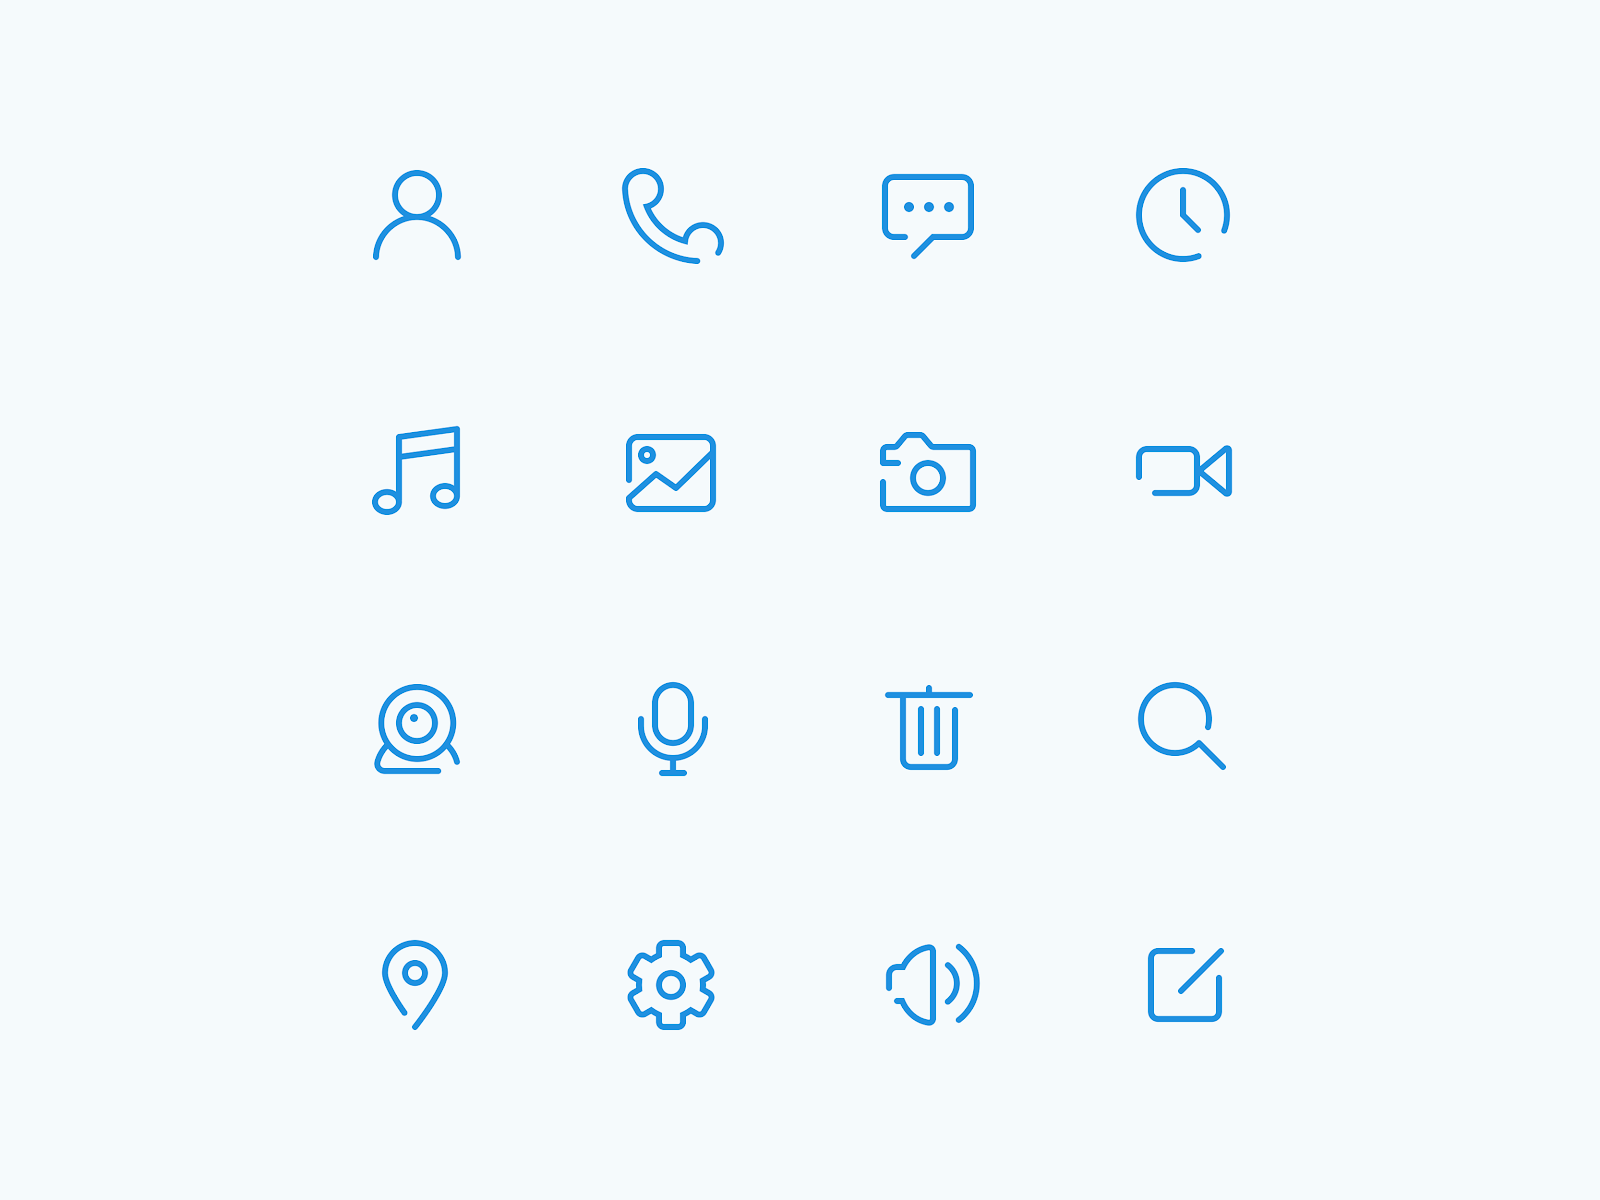 free icons download  download icon png  website icon png  free icons for commercial use  icon finder  royalty free icons  icon archive  icons online